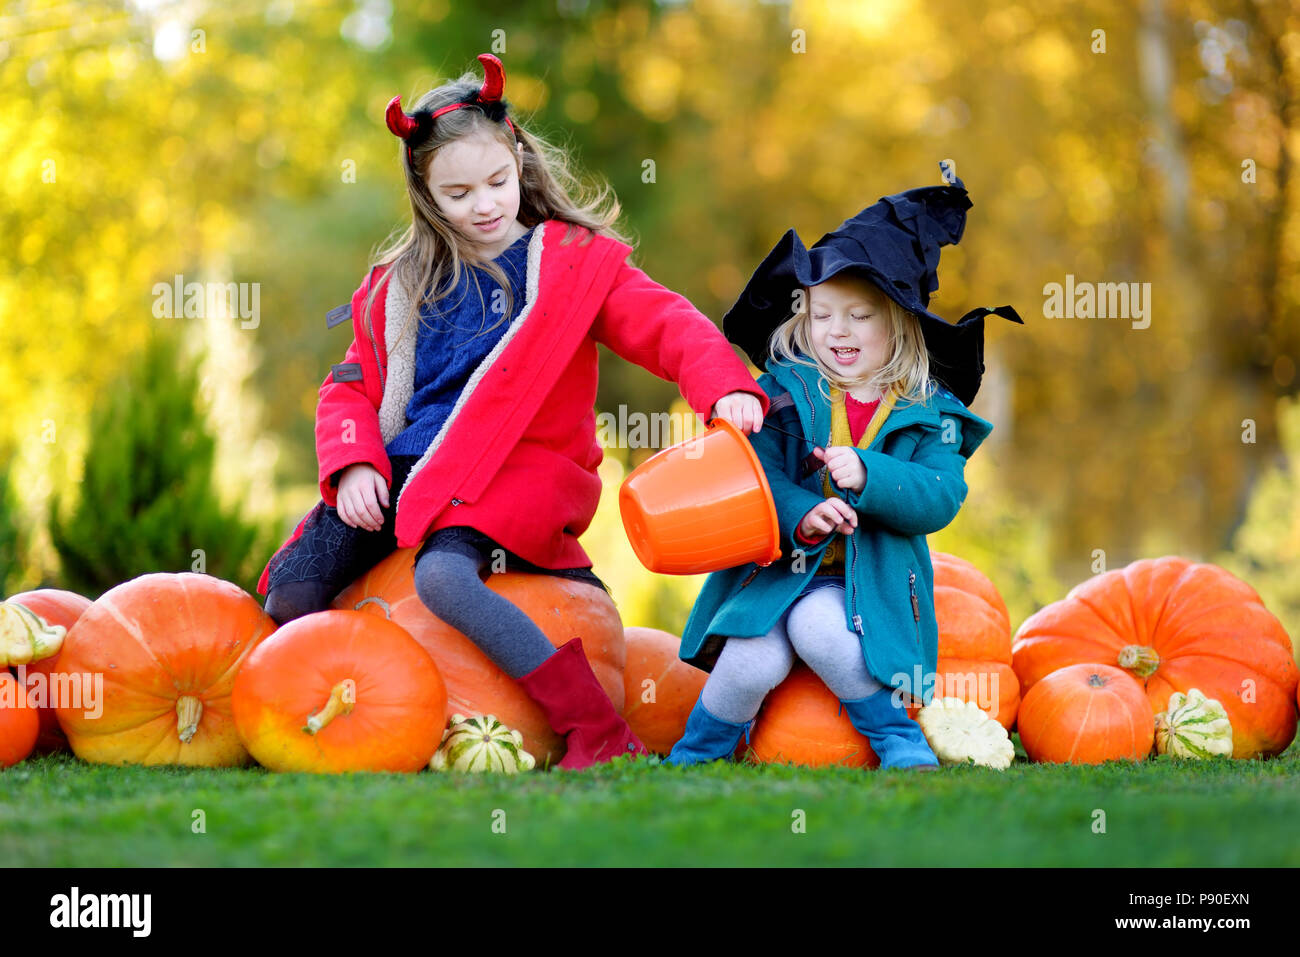 adorable little girls wearing halloween costume having fun on a pumpkin patch on beautiful autumn day